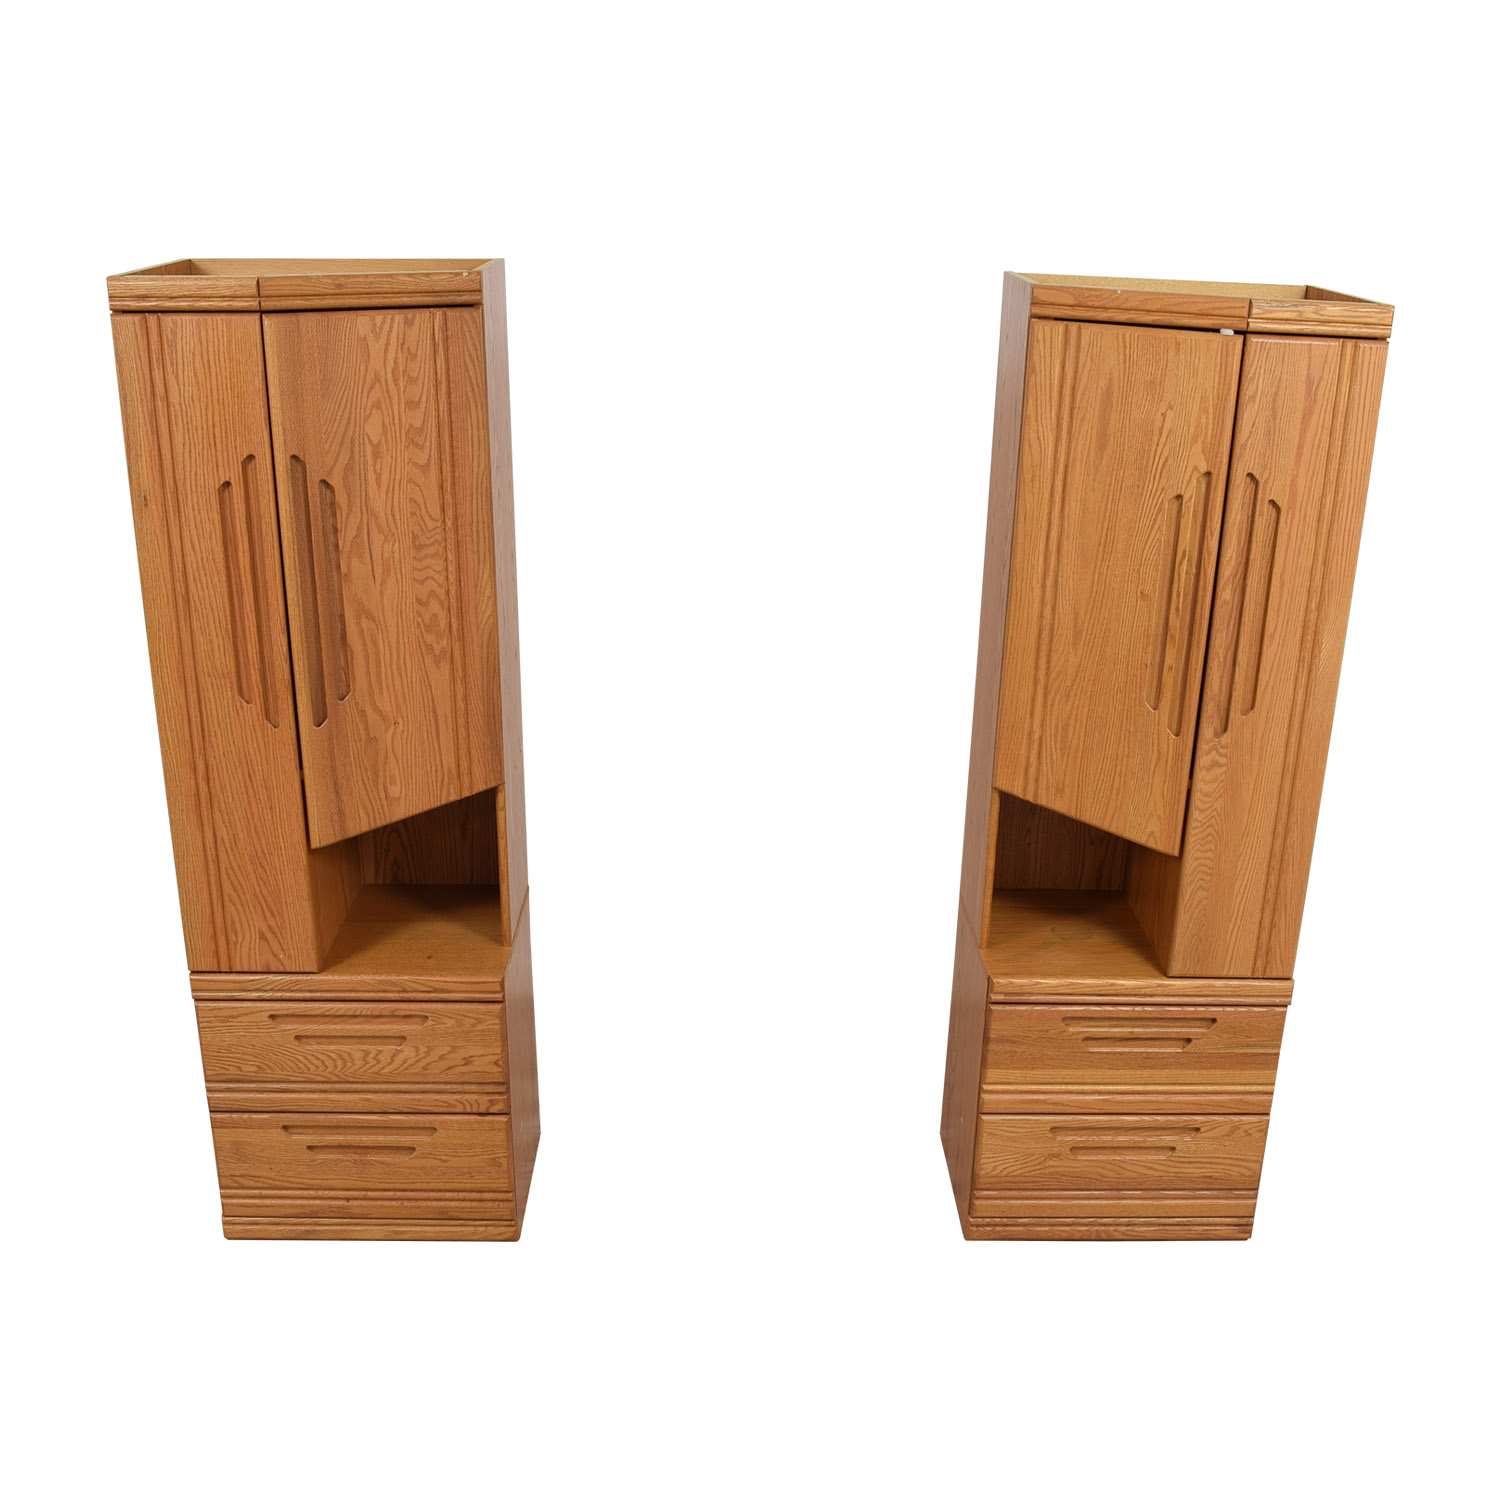 Golden Honey Wood Cabinet Towers sale